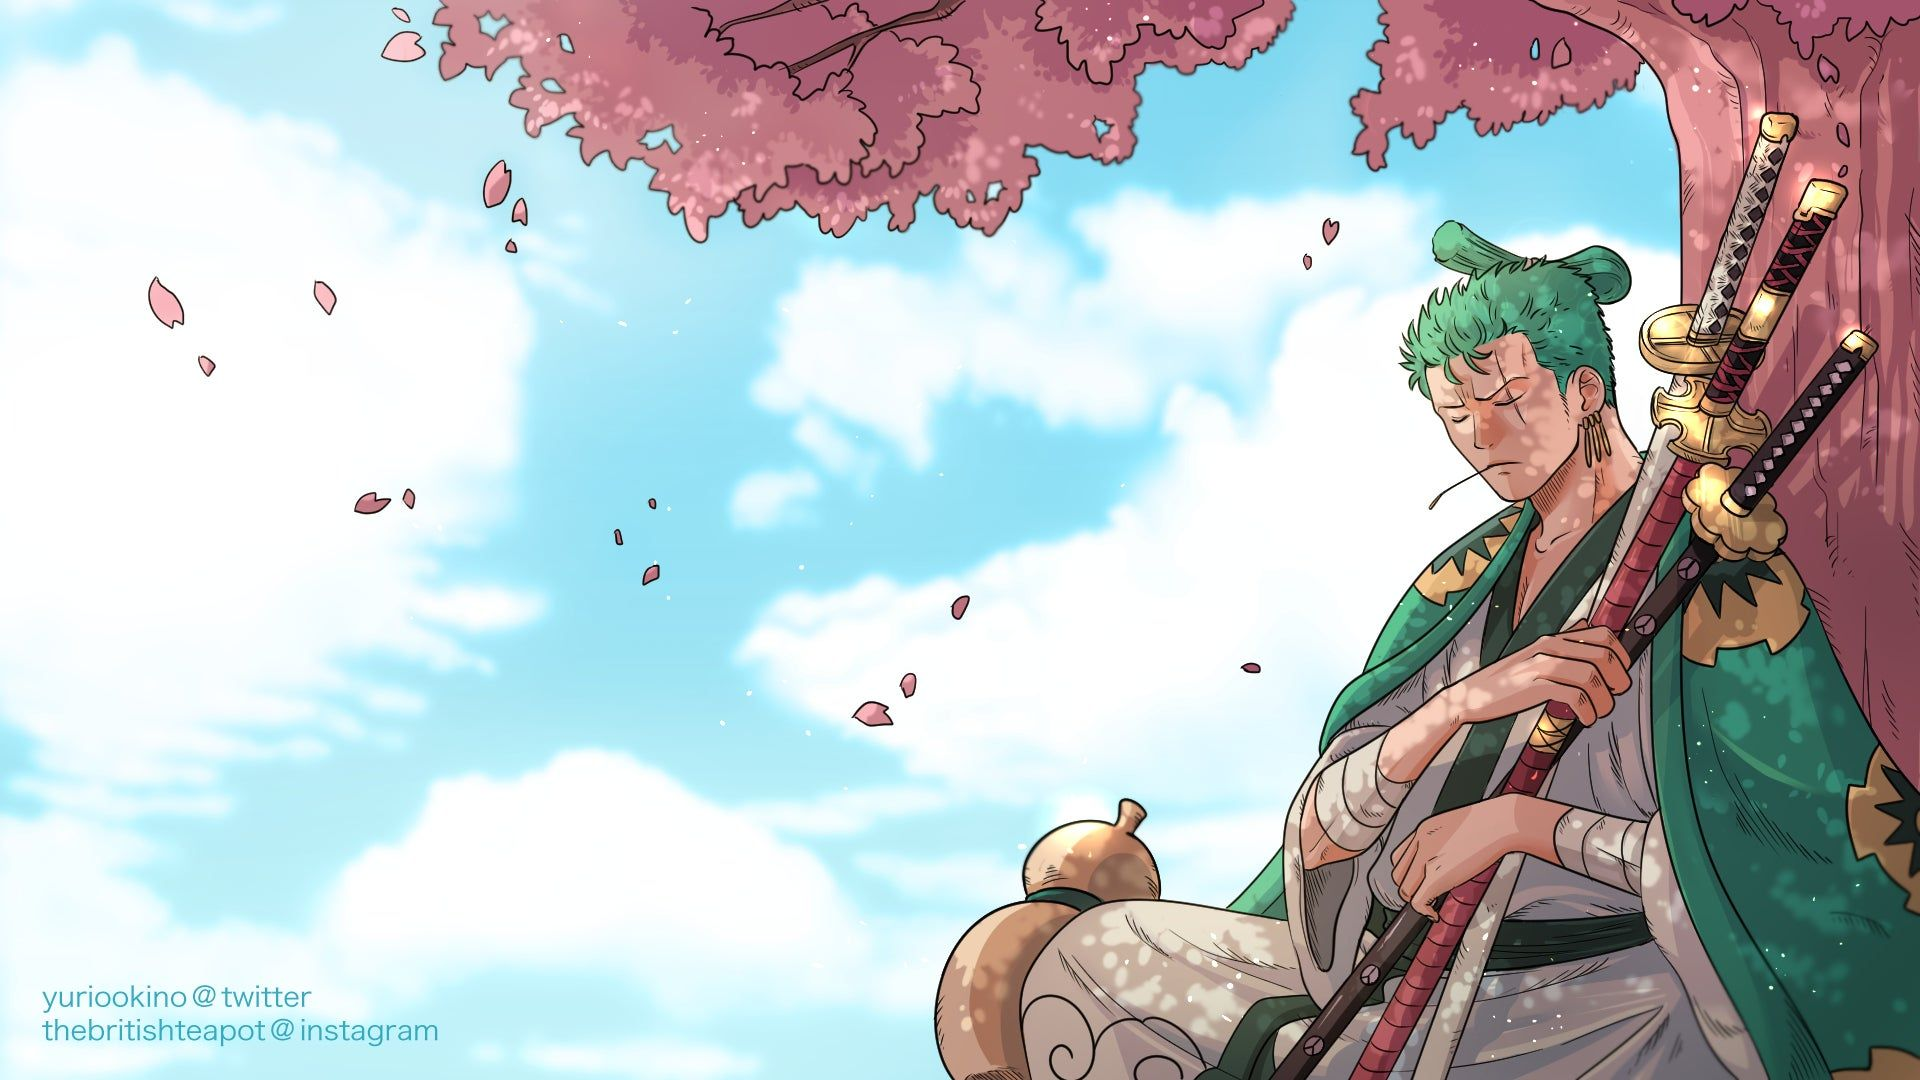 Zoro Wano Wallpapers Top Free Zoro Wano Backgrounds Wallpaperaccess